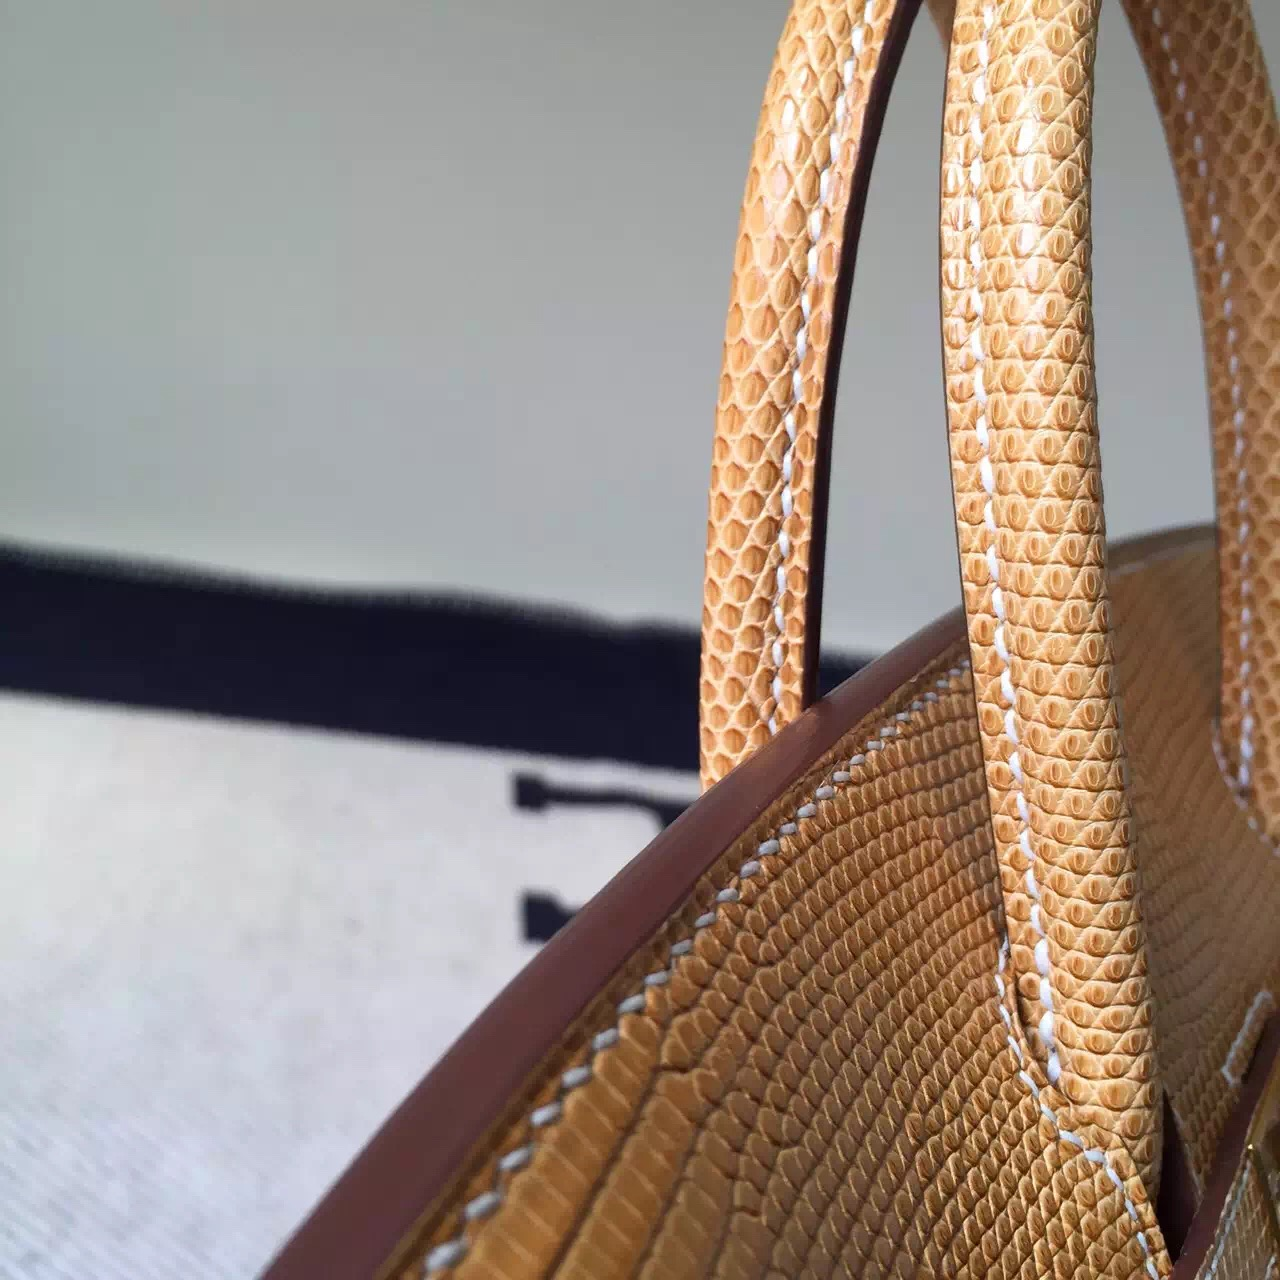 Hand Stitching Hermes 1G Mais Shiny Lizard Leather Birkin Bag 25cm